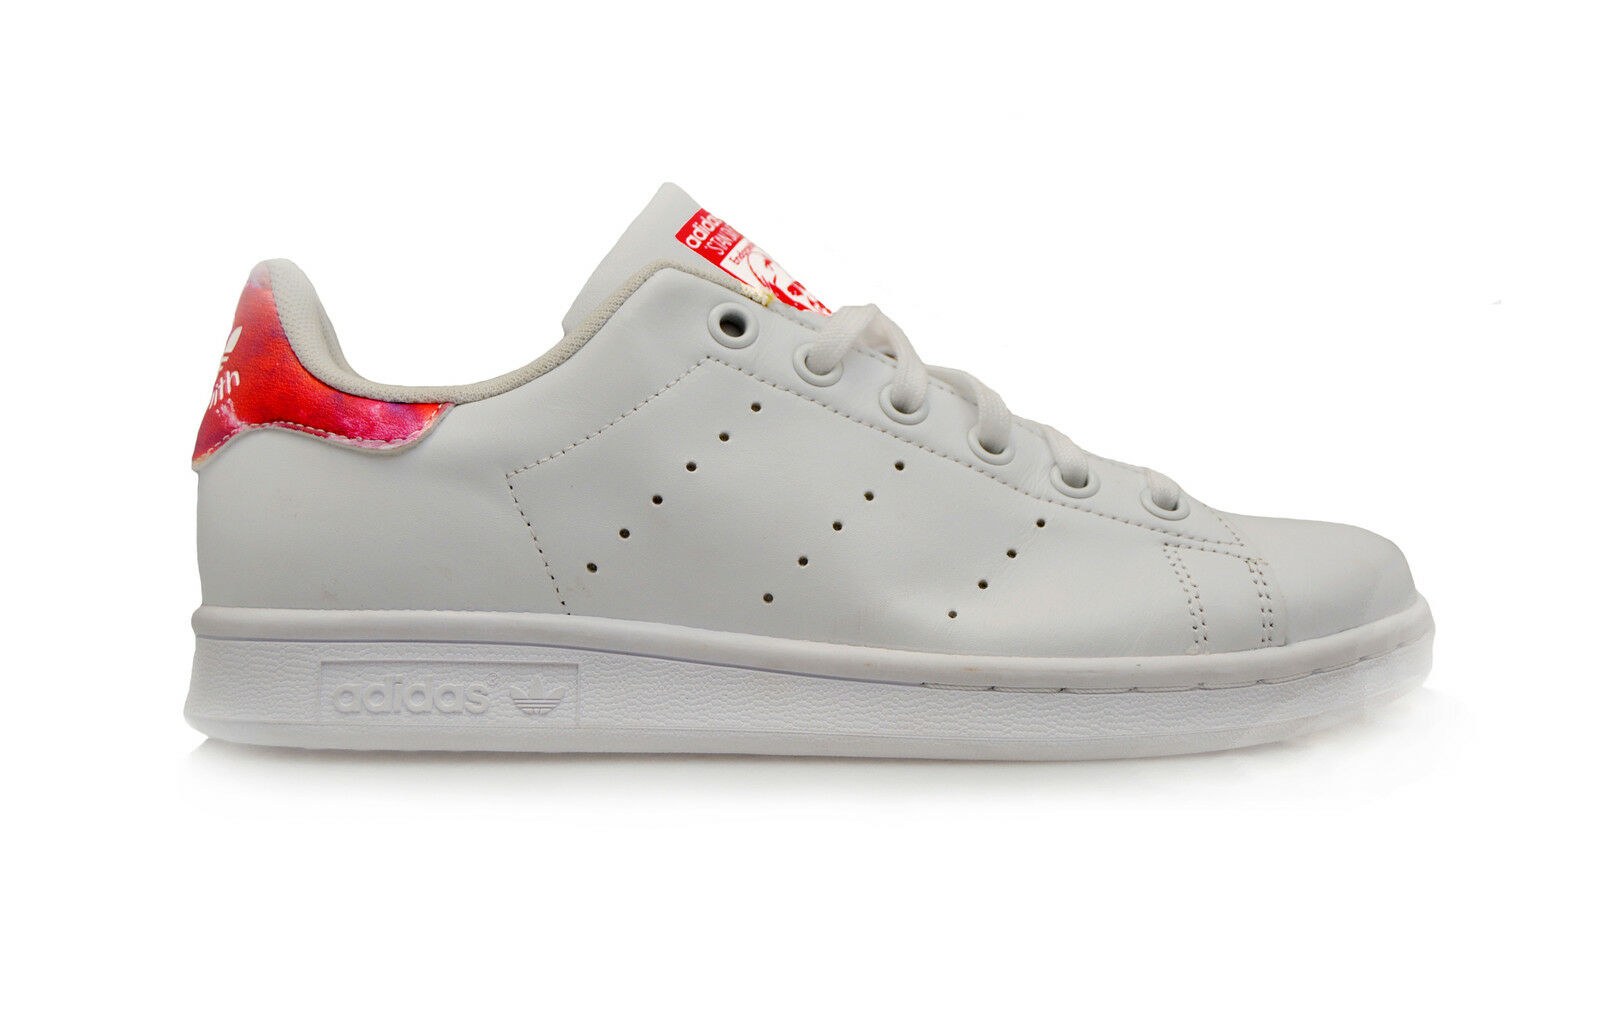 FEMMES ADIDAS STAN SMITH W - s81873 - BLANC ORANGE baskets